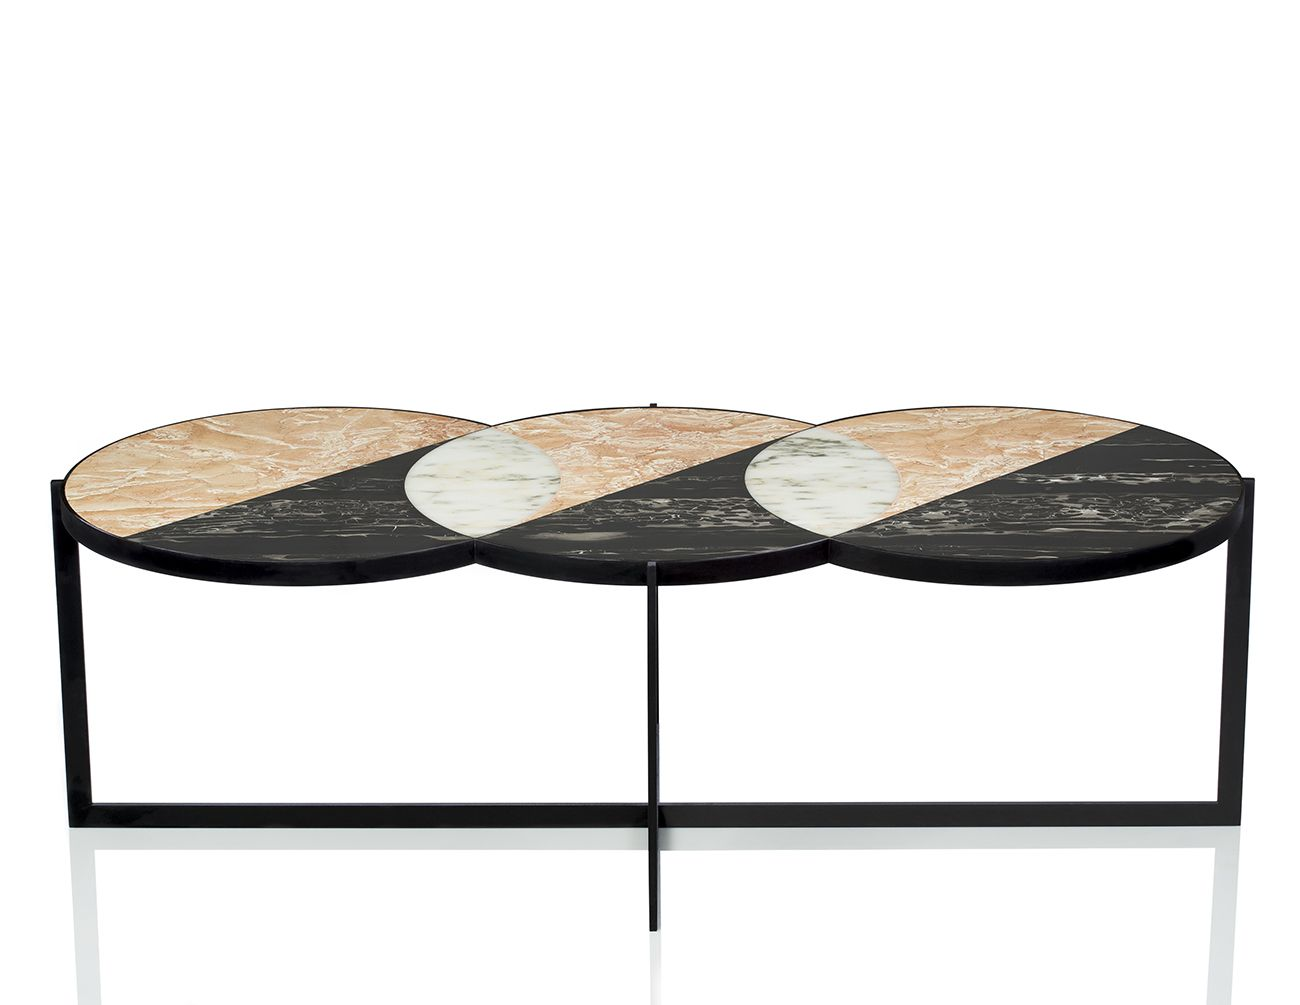 Week Of April 10 2017 Sight Unseen In 2020 Furniture Coffee Table Stone Design [ 1005 x 1300 Pixel ]